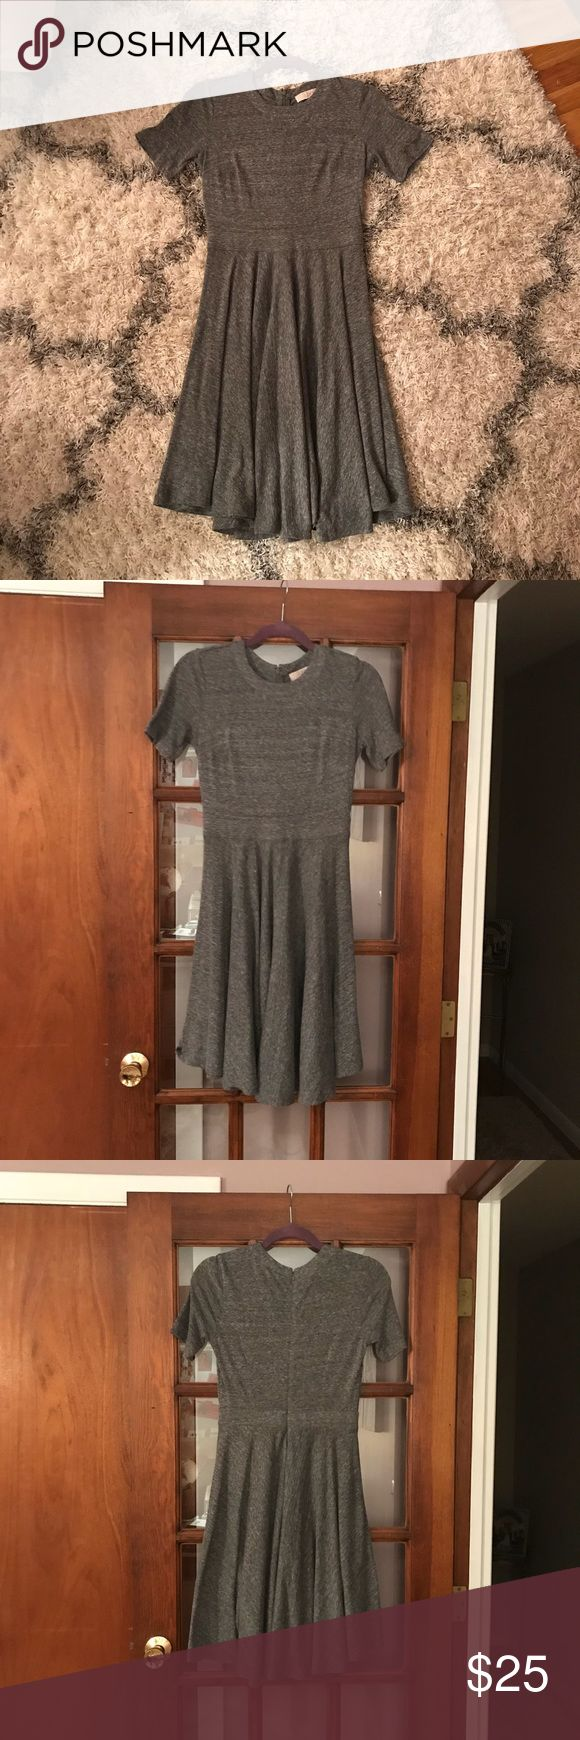 Ann Taylor LOFT Gray Dress Ann Taylor LOFT Knit Grey Dress.  Flared at the end - Size 2 petite.  Light weight material.  Come from smoke free house.  Only worn a few times, great condition!  Willing to accept reasonable offers :) LOFT Dresses Asymmetrical